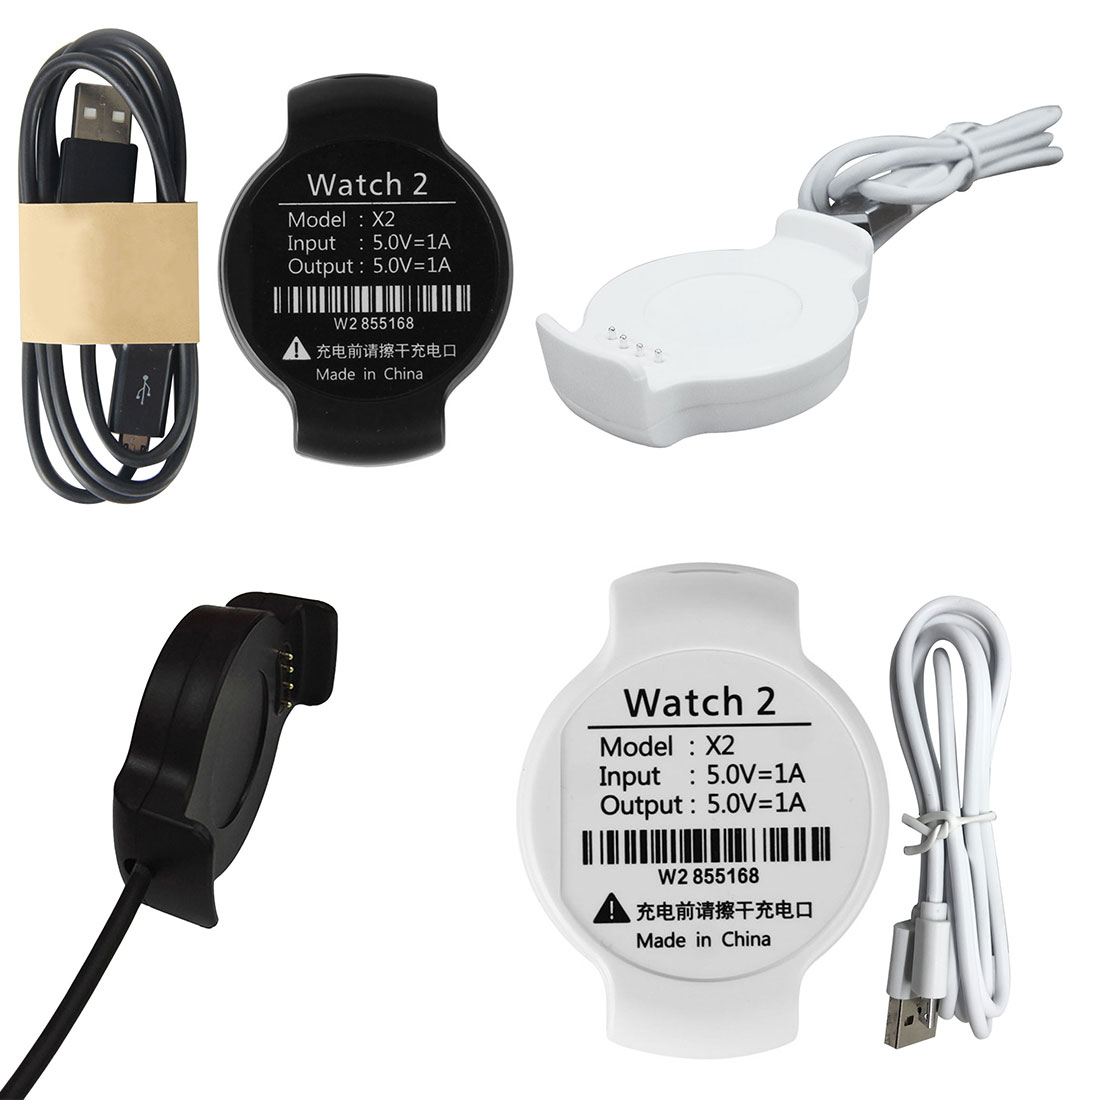 Centechia Watch Charger For Huawei Smart Watch2 Dock Station Cradle Desktop USB Charging Cable